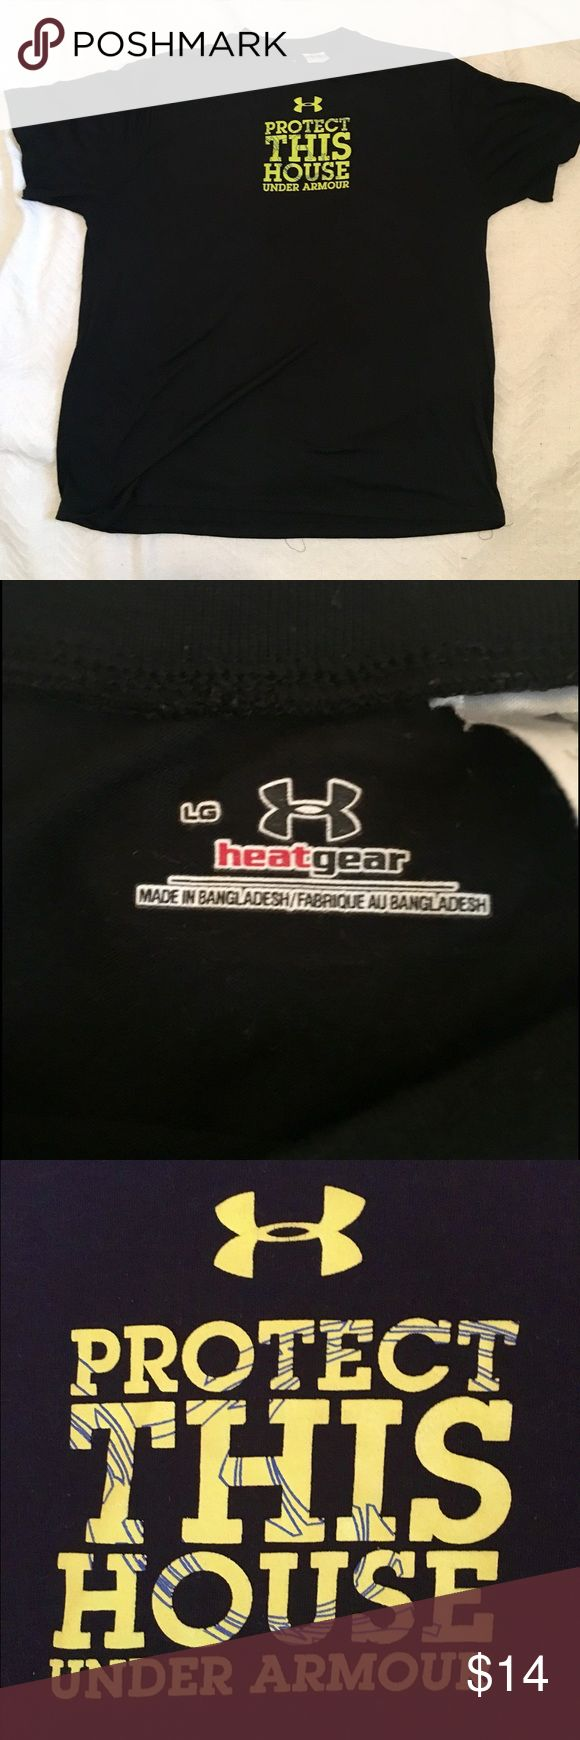 Mens Under Armour Shirt Great used condition Under Armour shirt. Under Armour Shirts Tees - Short Sleeve